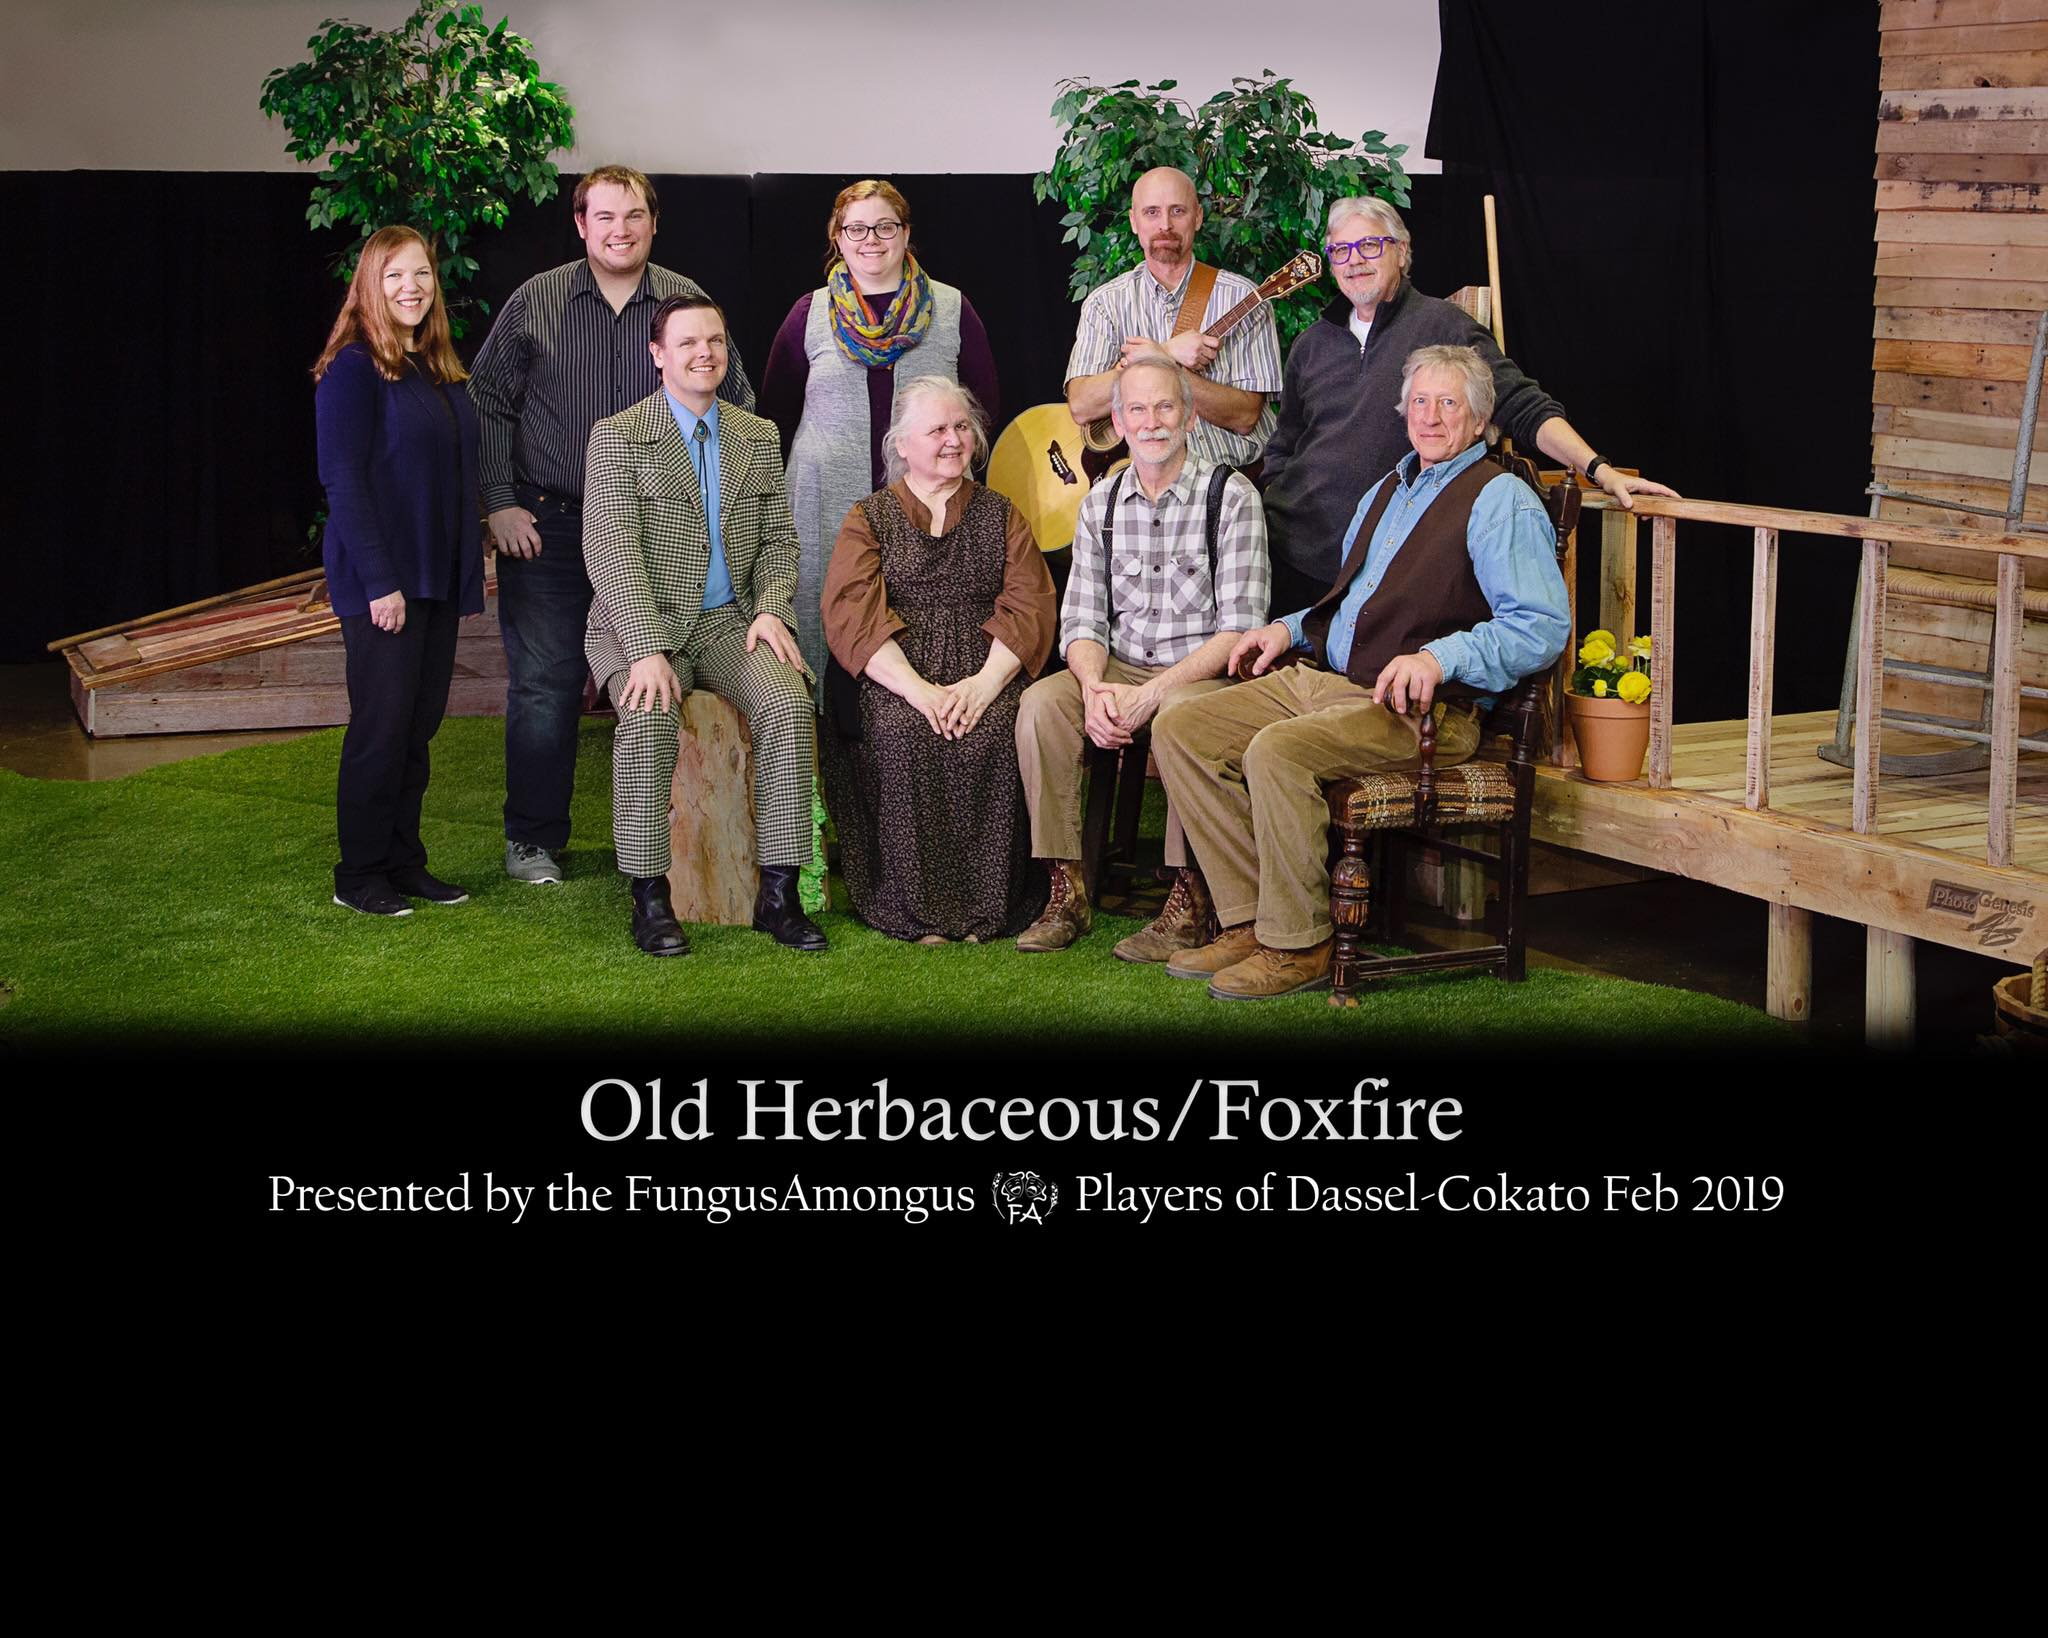 "Old Herbaceous / Foxfire - ""Old Herbaceous"" by Alfred Shaughnessy, novel by Reginald Arkell / ""Foxfire"" script/lyrics by Hume Cronyn and Susan Cooper, music by Jonathan HoltzmanDirected by Kurt Schulz / Directed by David Metcalf""Foxfire"" 2019 AACTFest (advanced to Regions)Pictured Left to Right: (Front) Tom Johnson, Linda Metcalf, Ron Hungerford, Kurt Schulz (Back) Becky Hungerford, Tom Nelson, Elisabeth Nelson, Kirk Asplin, David Metcalf"